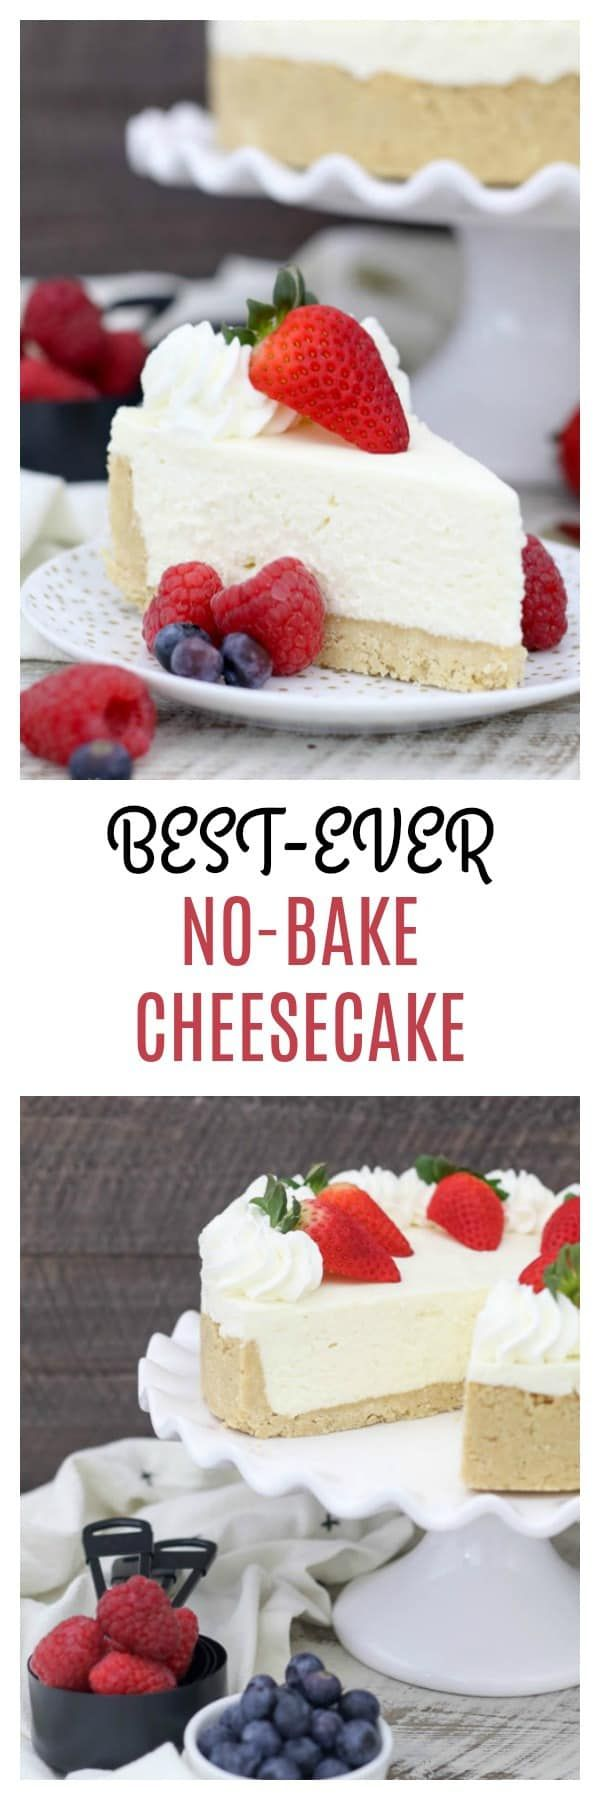 This is the Best Ever No-Bake Cheesecake made without Cool Whip and no gelatin, this homemade no-bake cheesecake is so easy, just a few simple ingredients plus the addition of white chocolate, this creamy no-bake cheesecake isn't too sweet and pairs perfectly with any fruit topping.